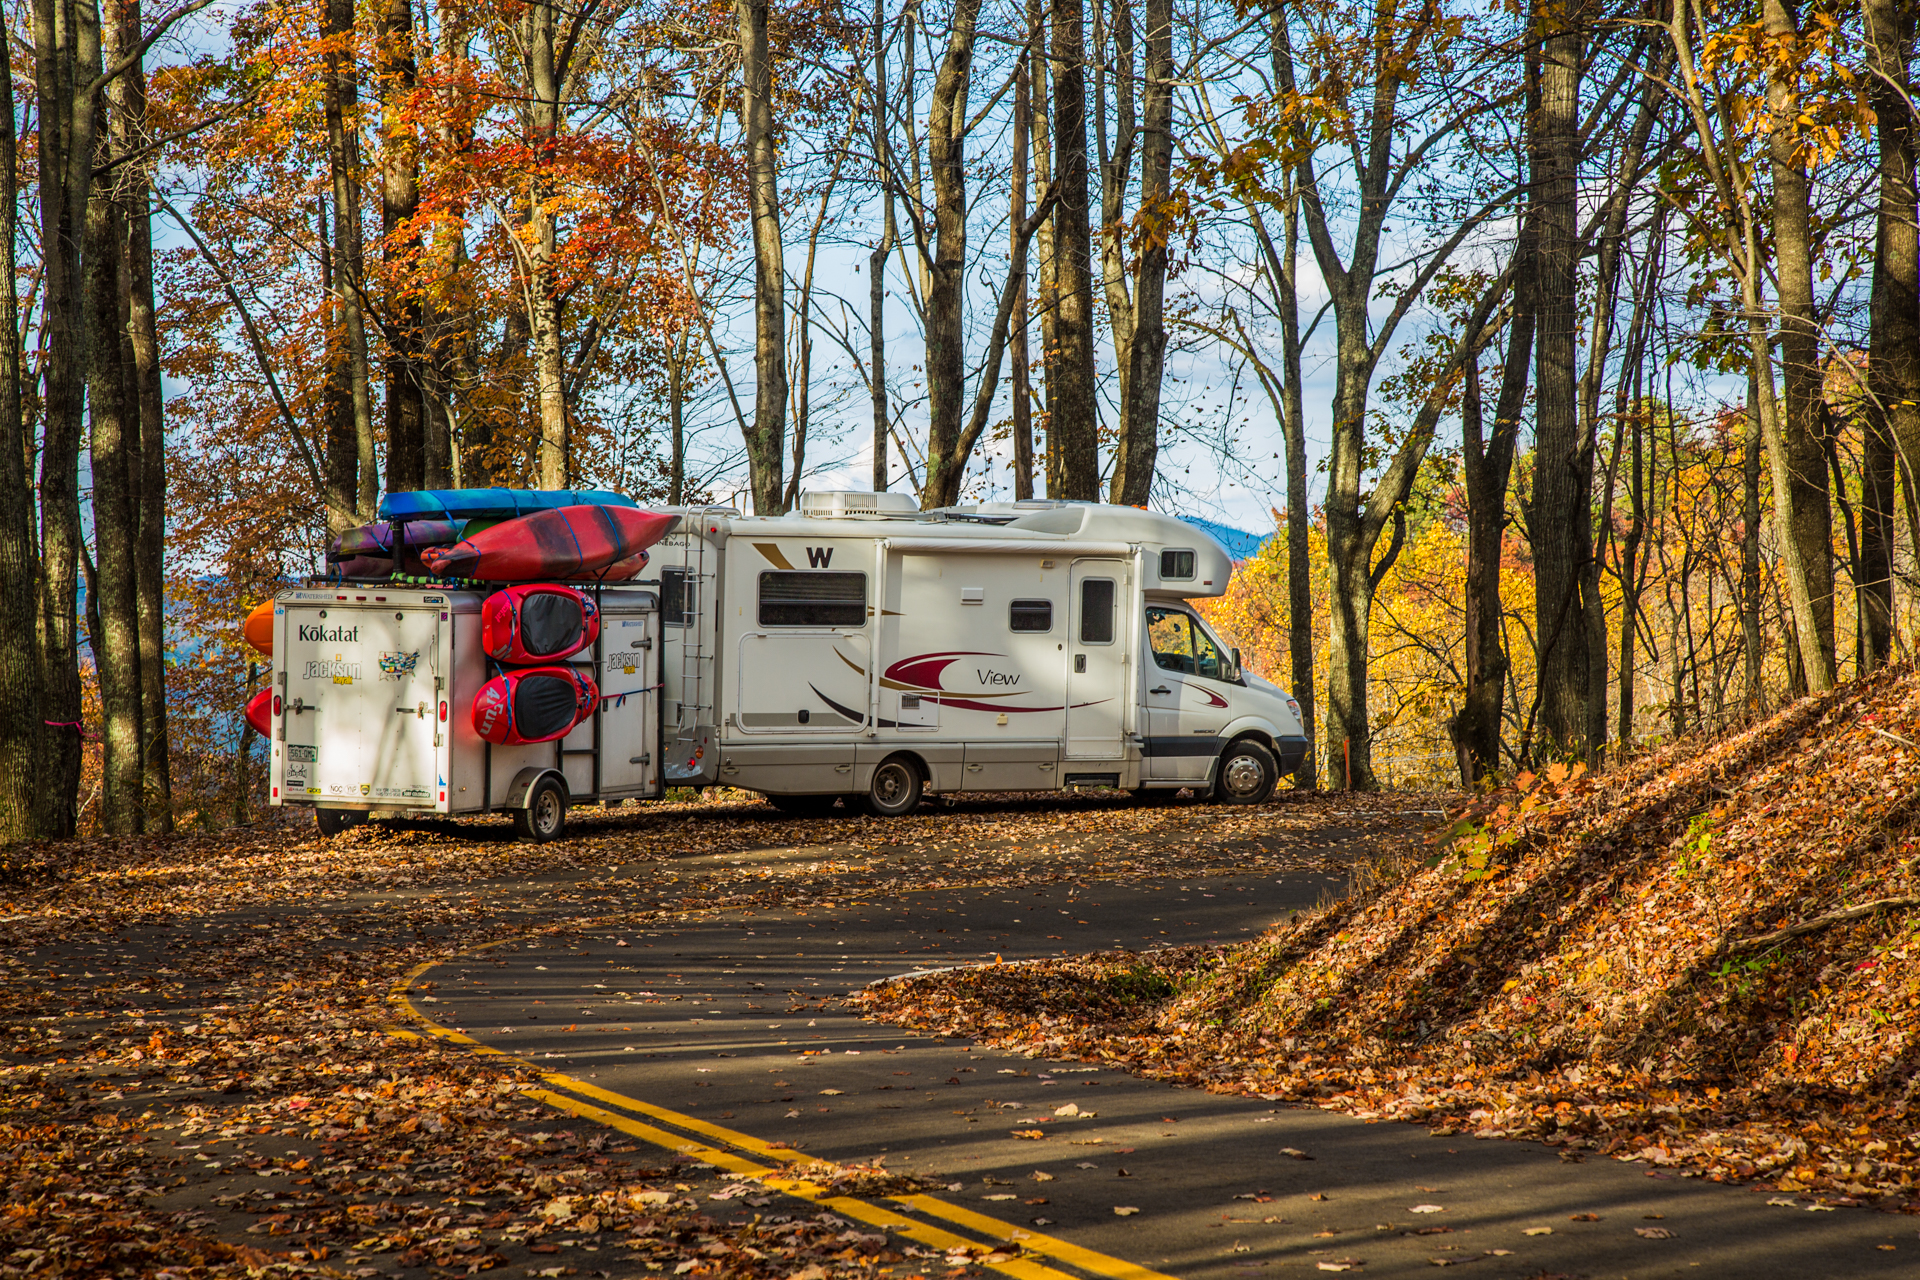 Winnebago View with trailer attached parked along the side of the road among fallen leaves.